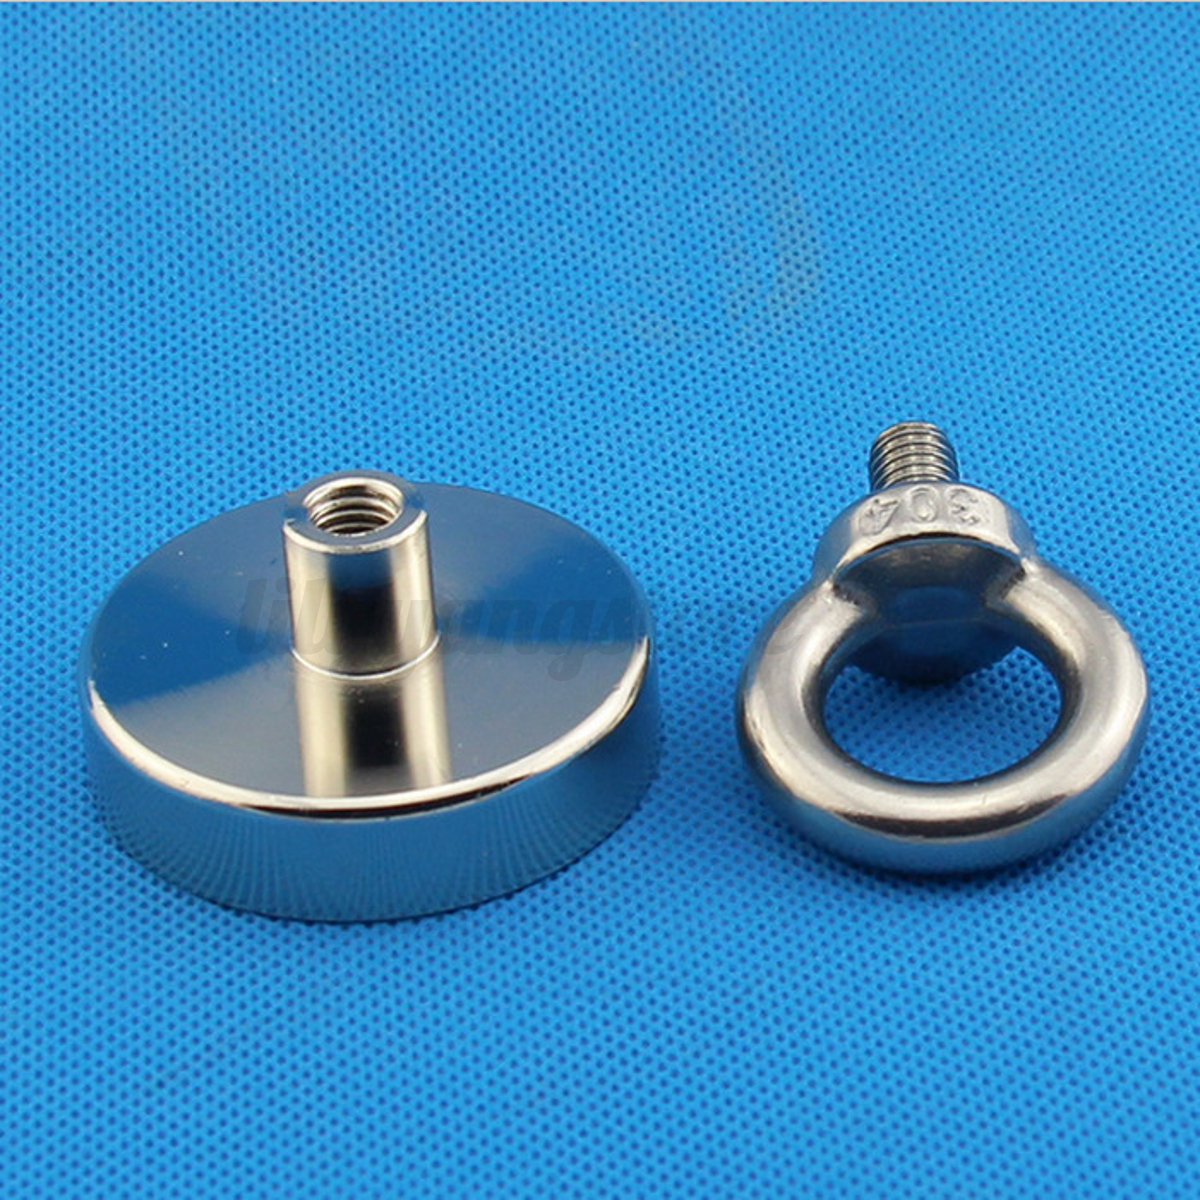 37 60 200kg hook recovery strong magnet fishing diving for Magnet fishing tips